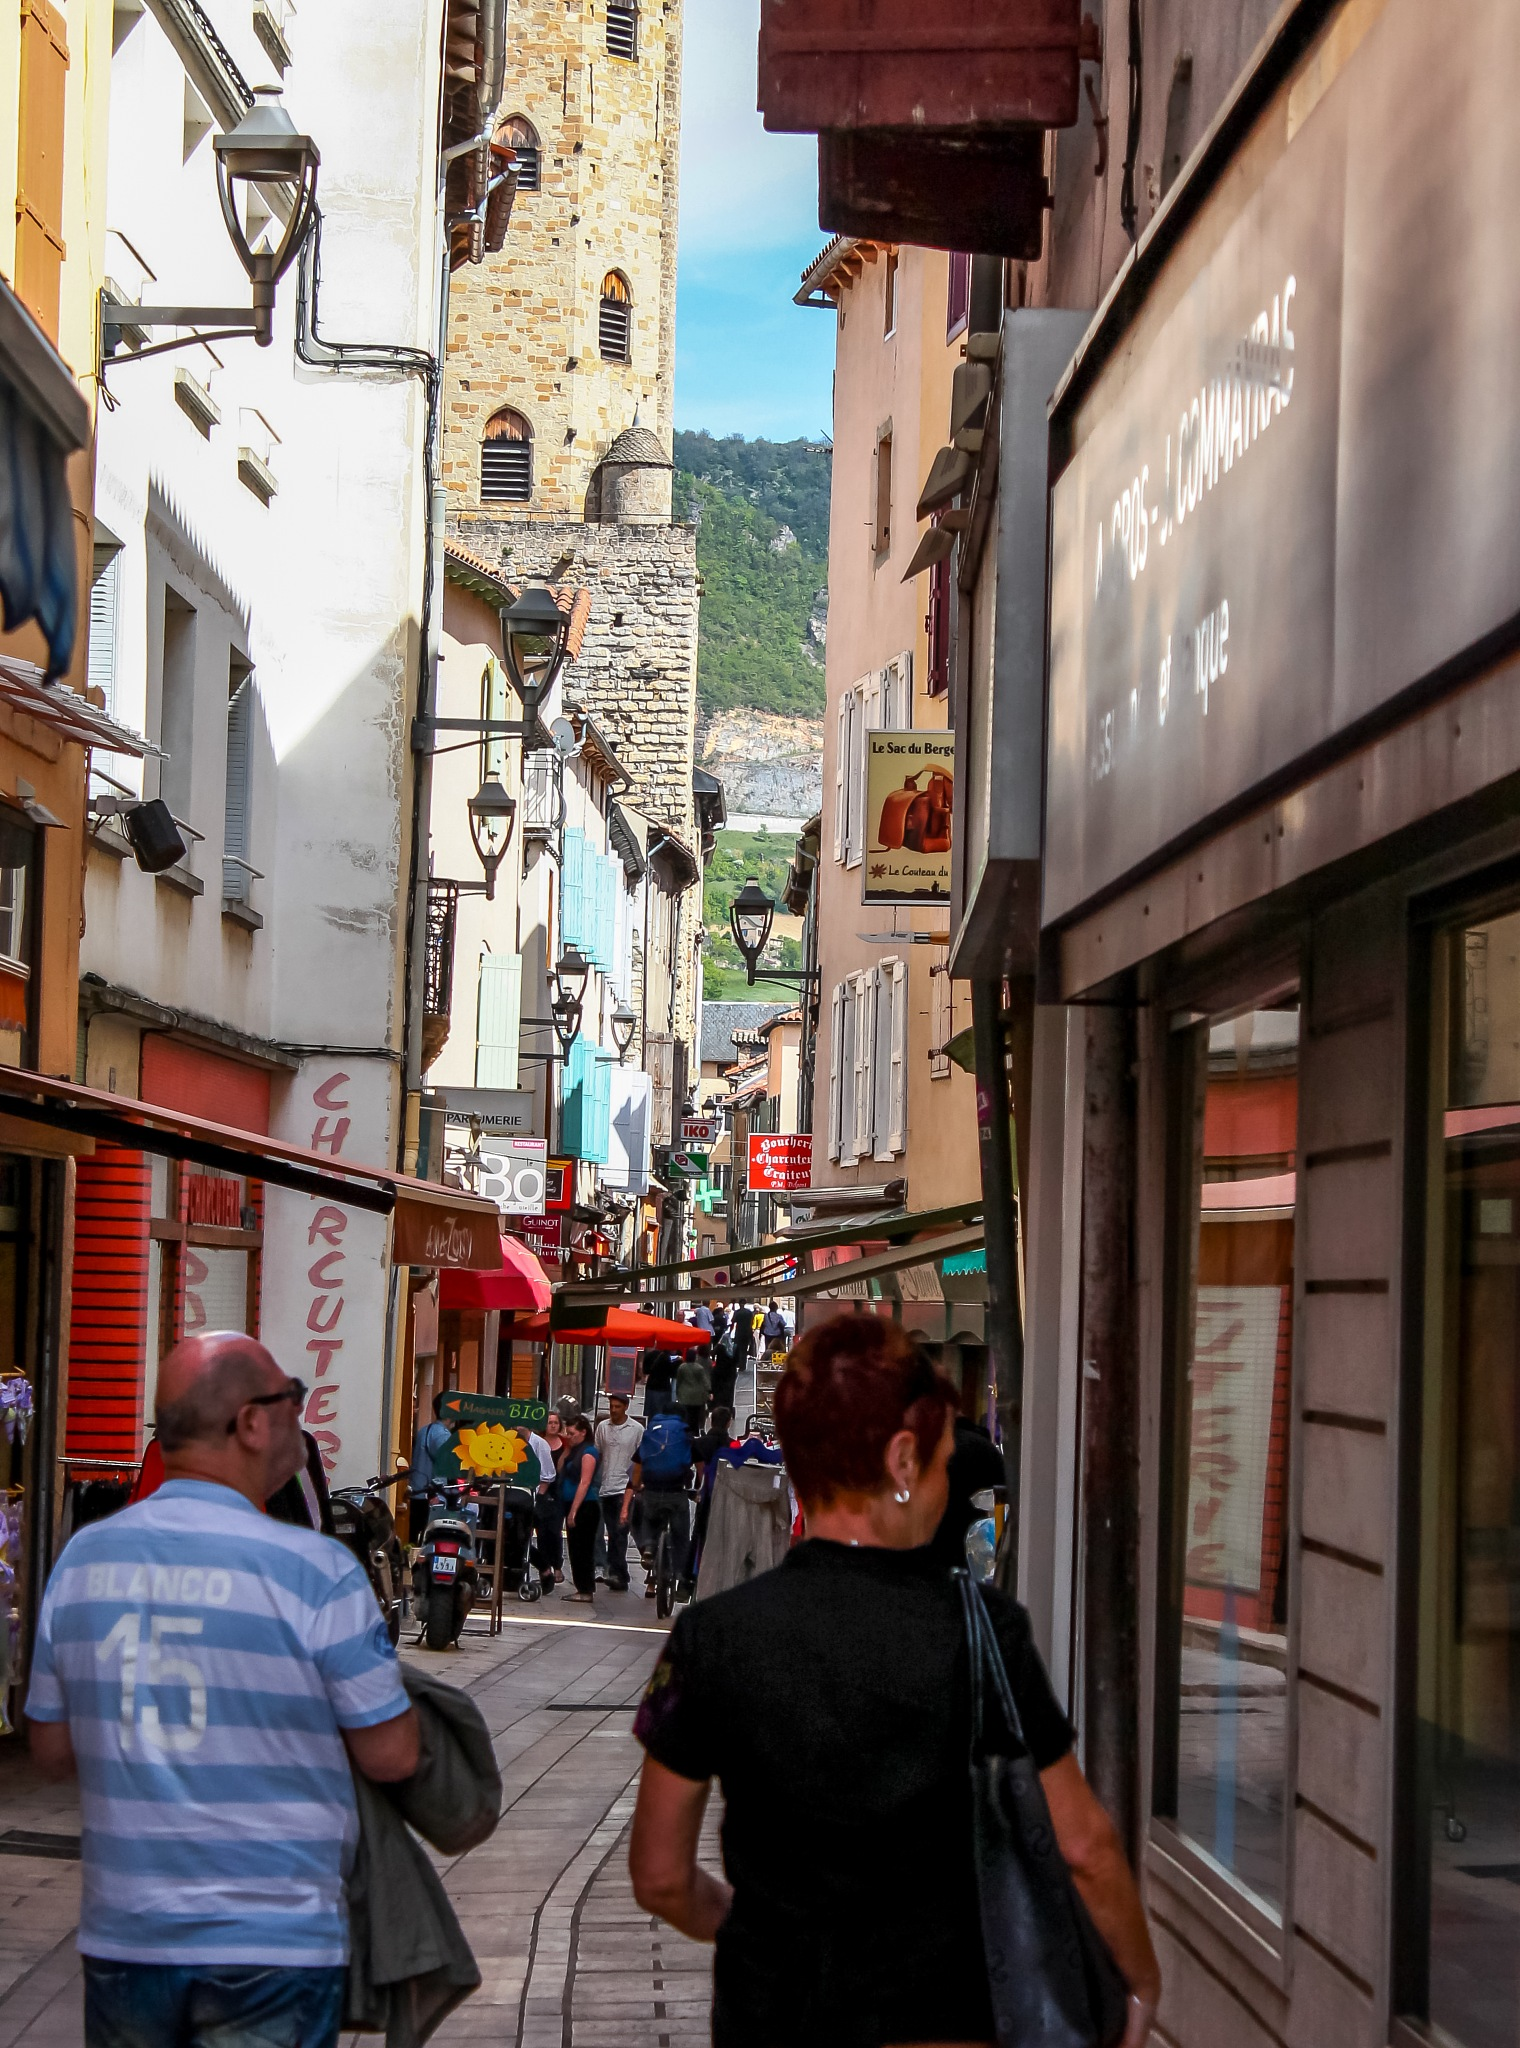 Shopping in Millau by izimvubu